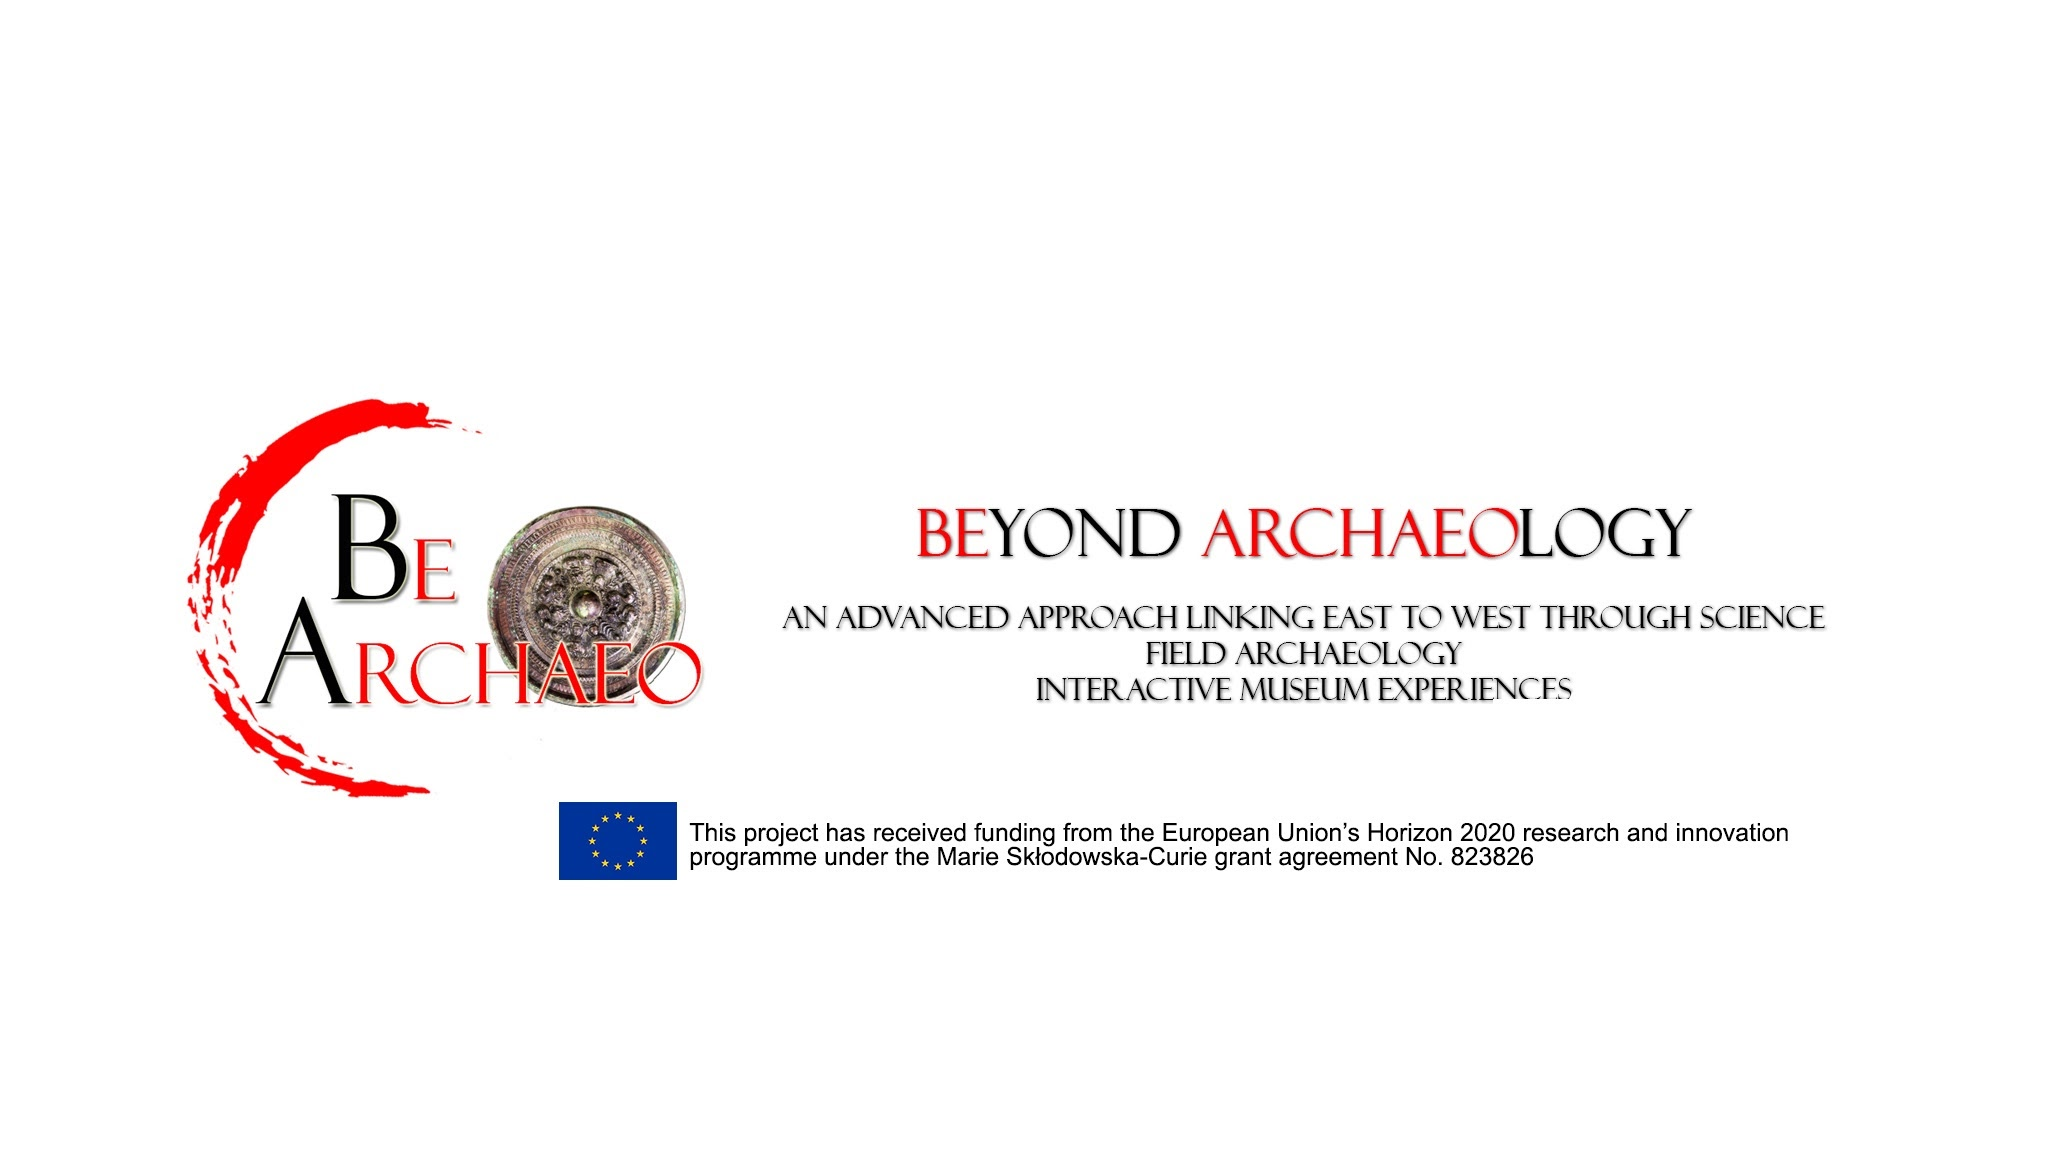 BeArchaeo Project